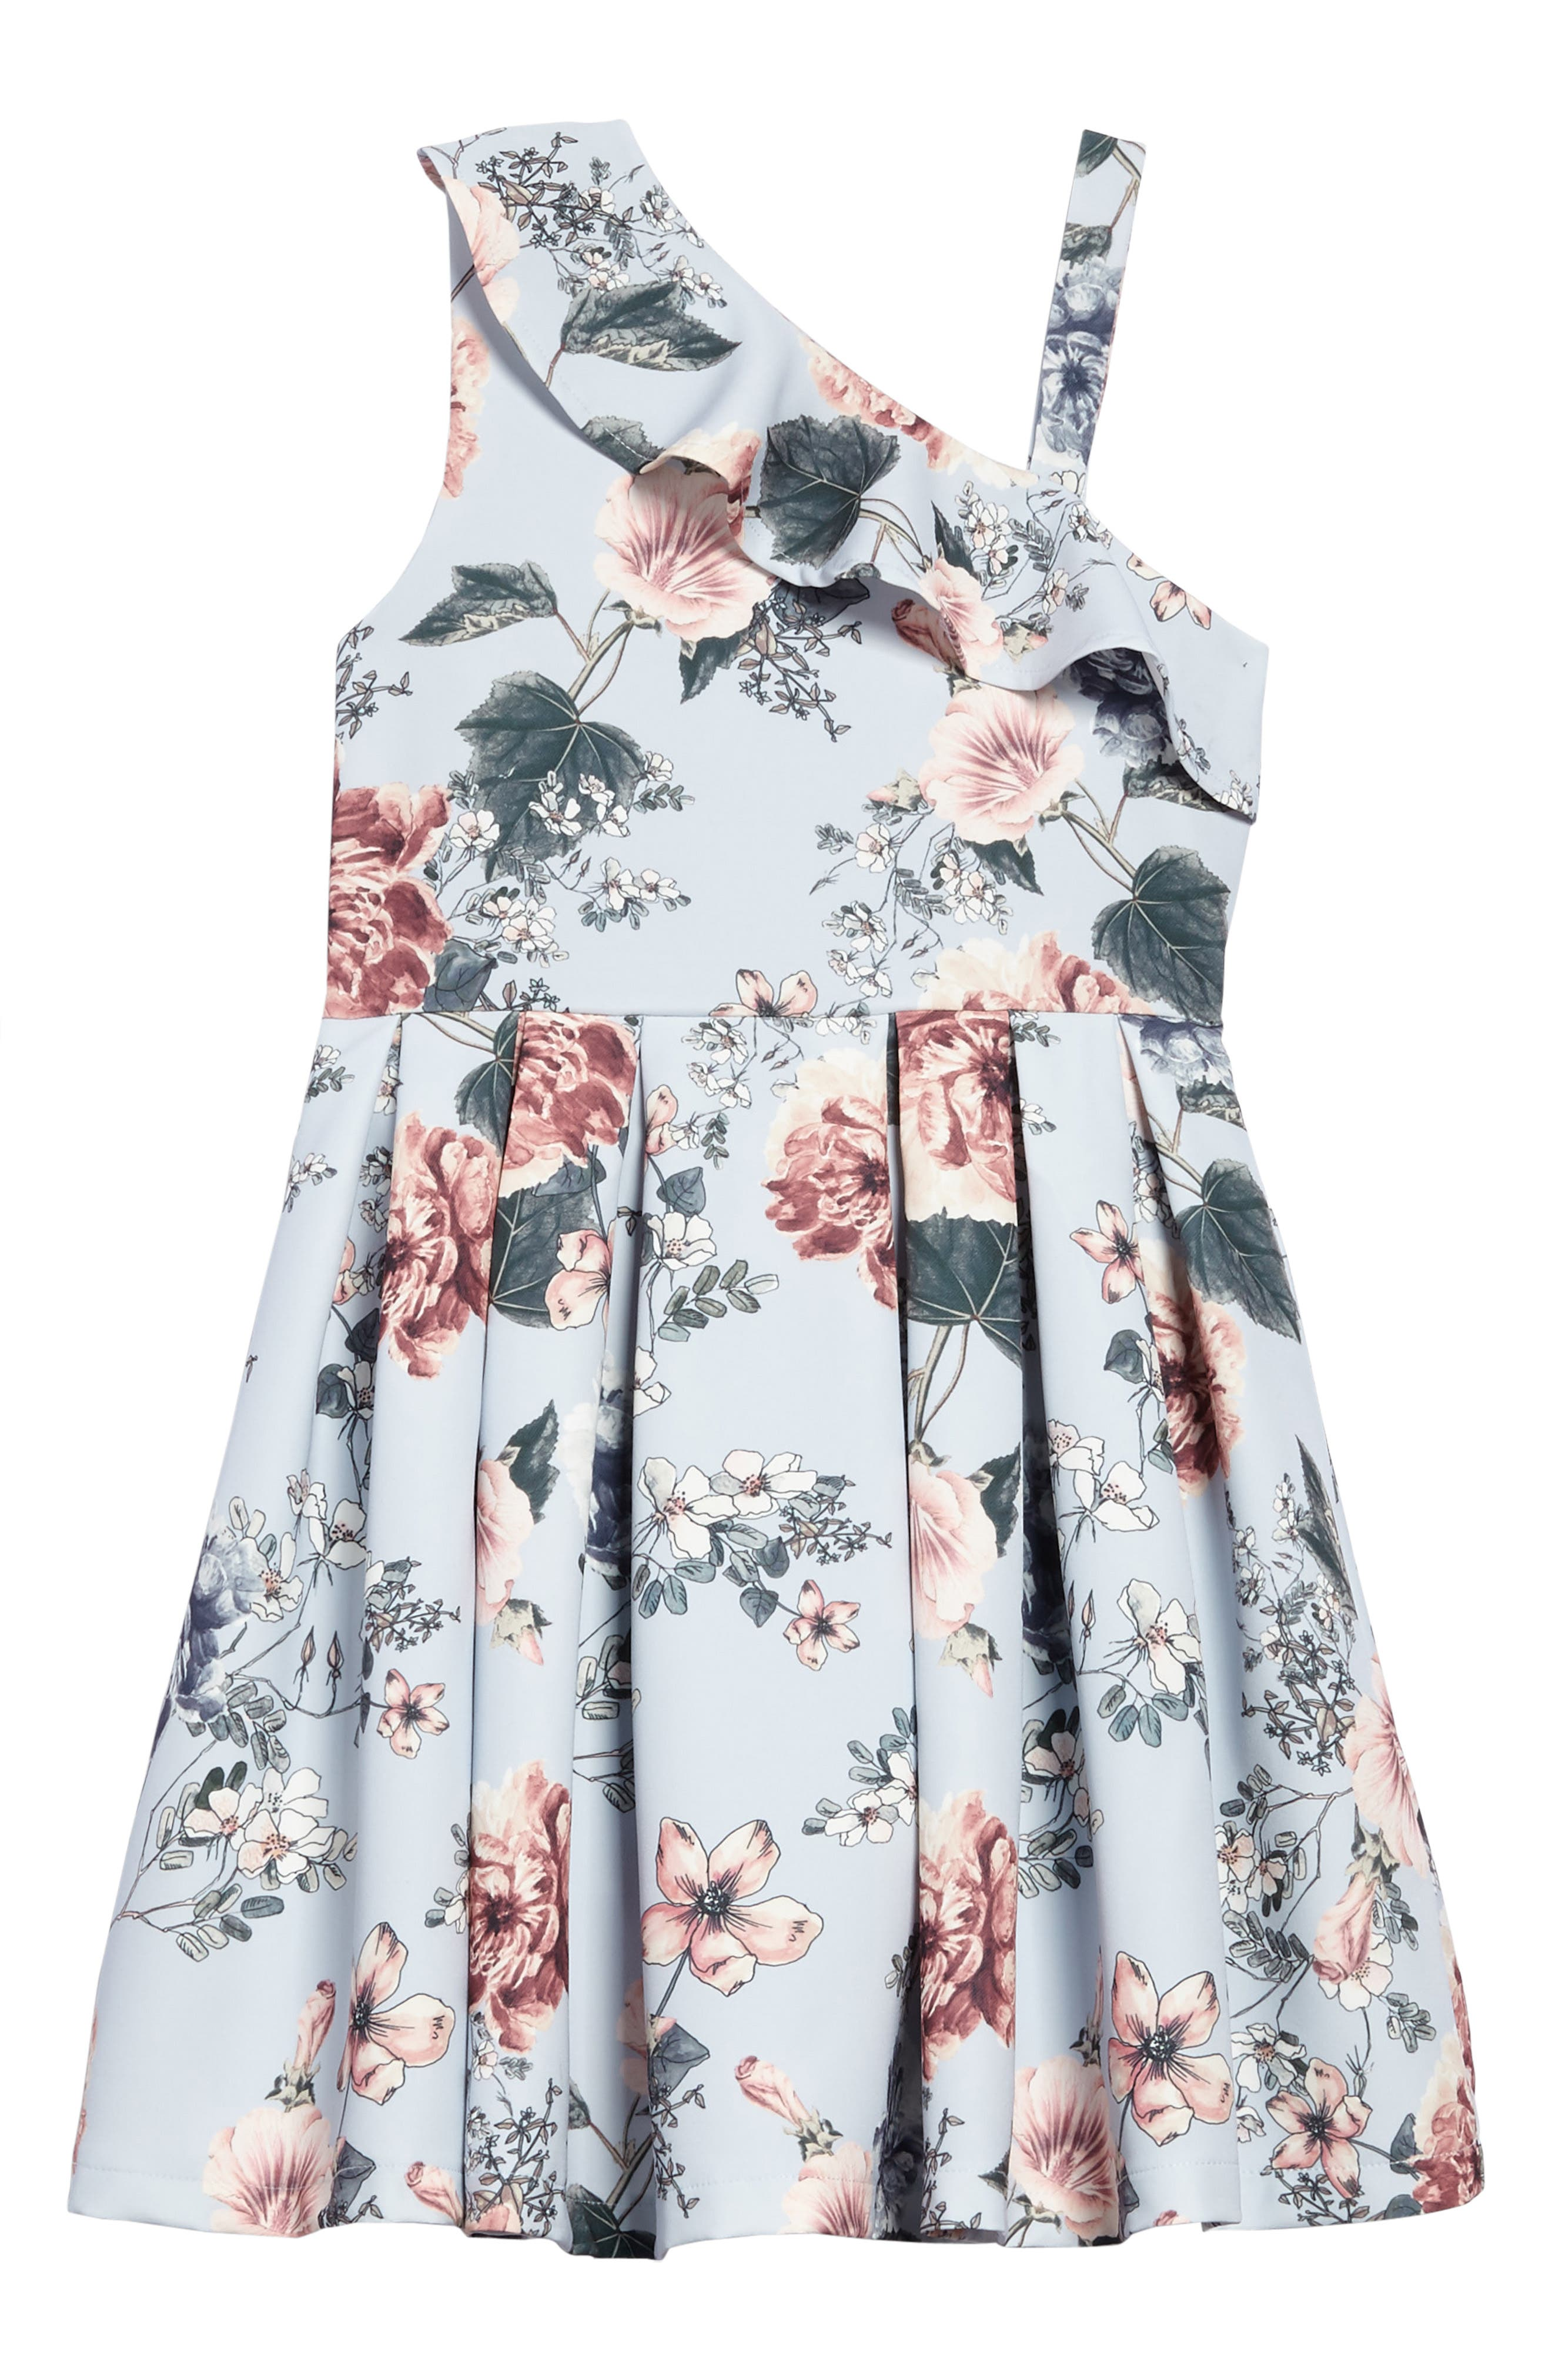 Ebony Floral Ruffle Dress,                             Main thumbnail 1, color,                             Light Blue Floral